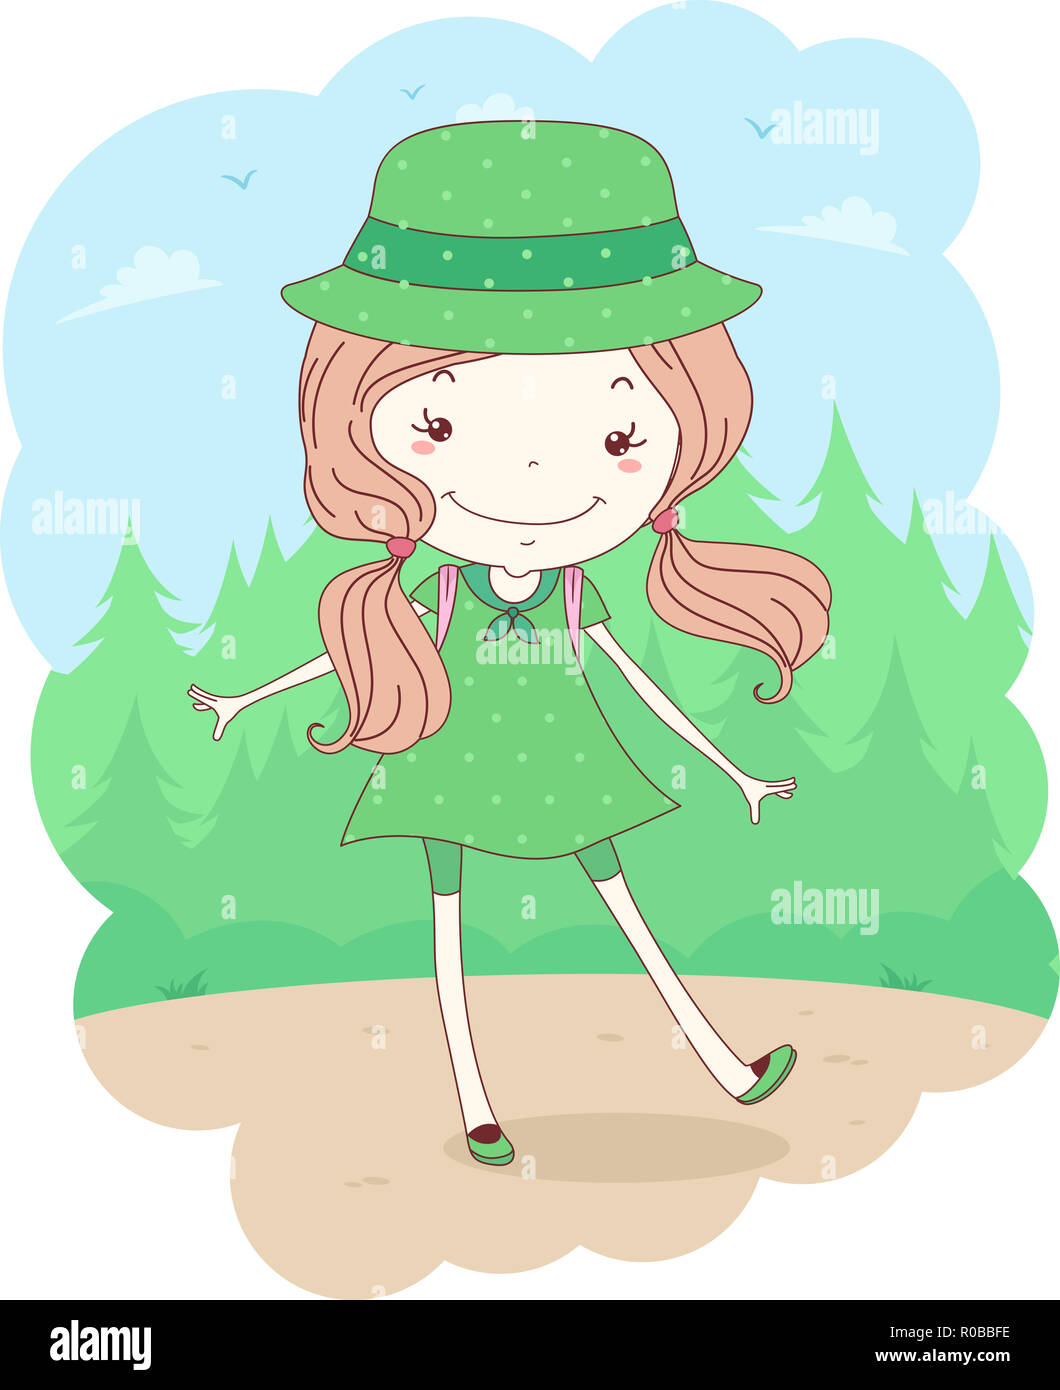 Illustration of a Kid Girl Scout in Uniform in the Forest for Camping - Stock Image